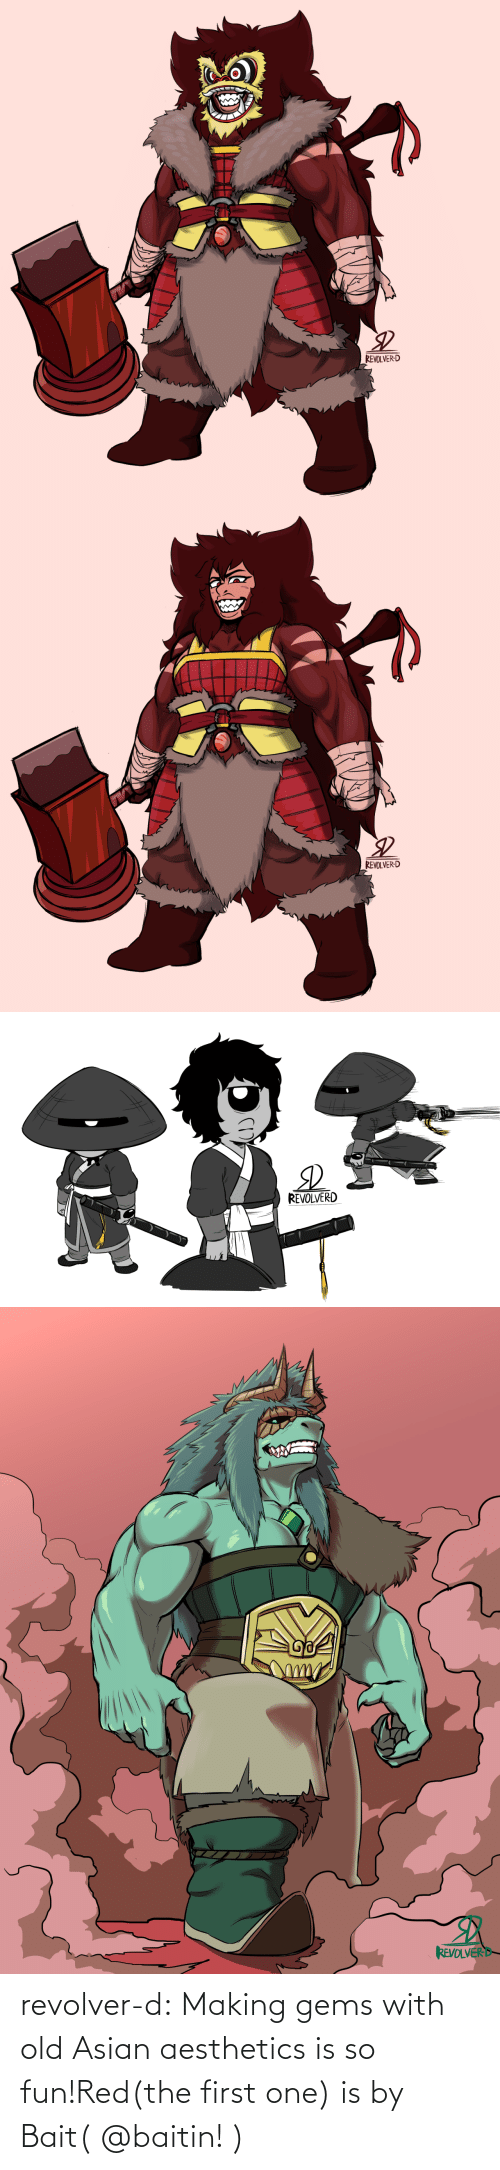 one: revolver-d:  Making gems with old Asian aesthetics is so fun!Red(the first one) is by Bait( @baitin! )